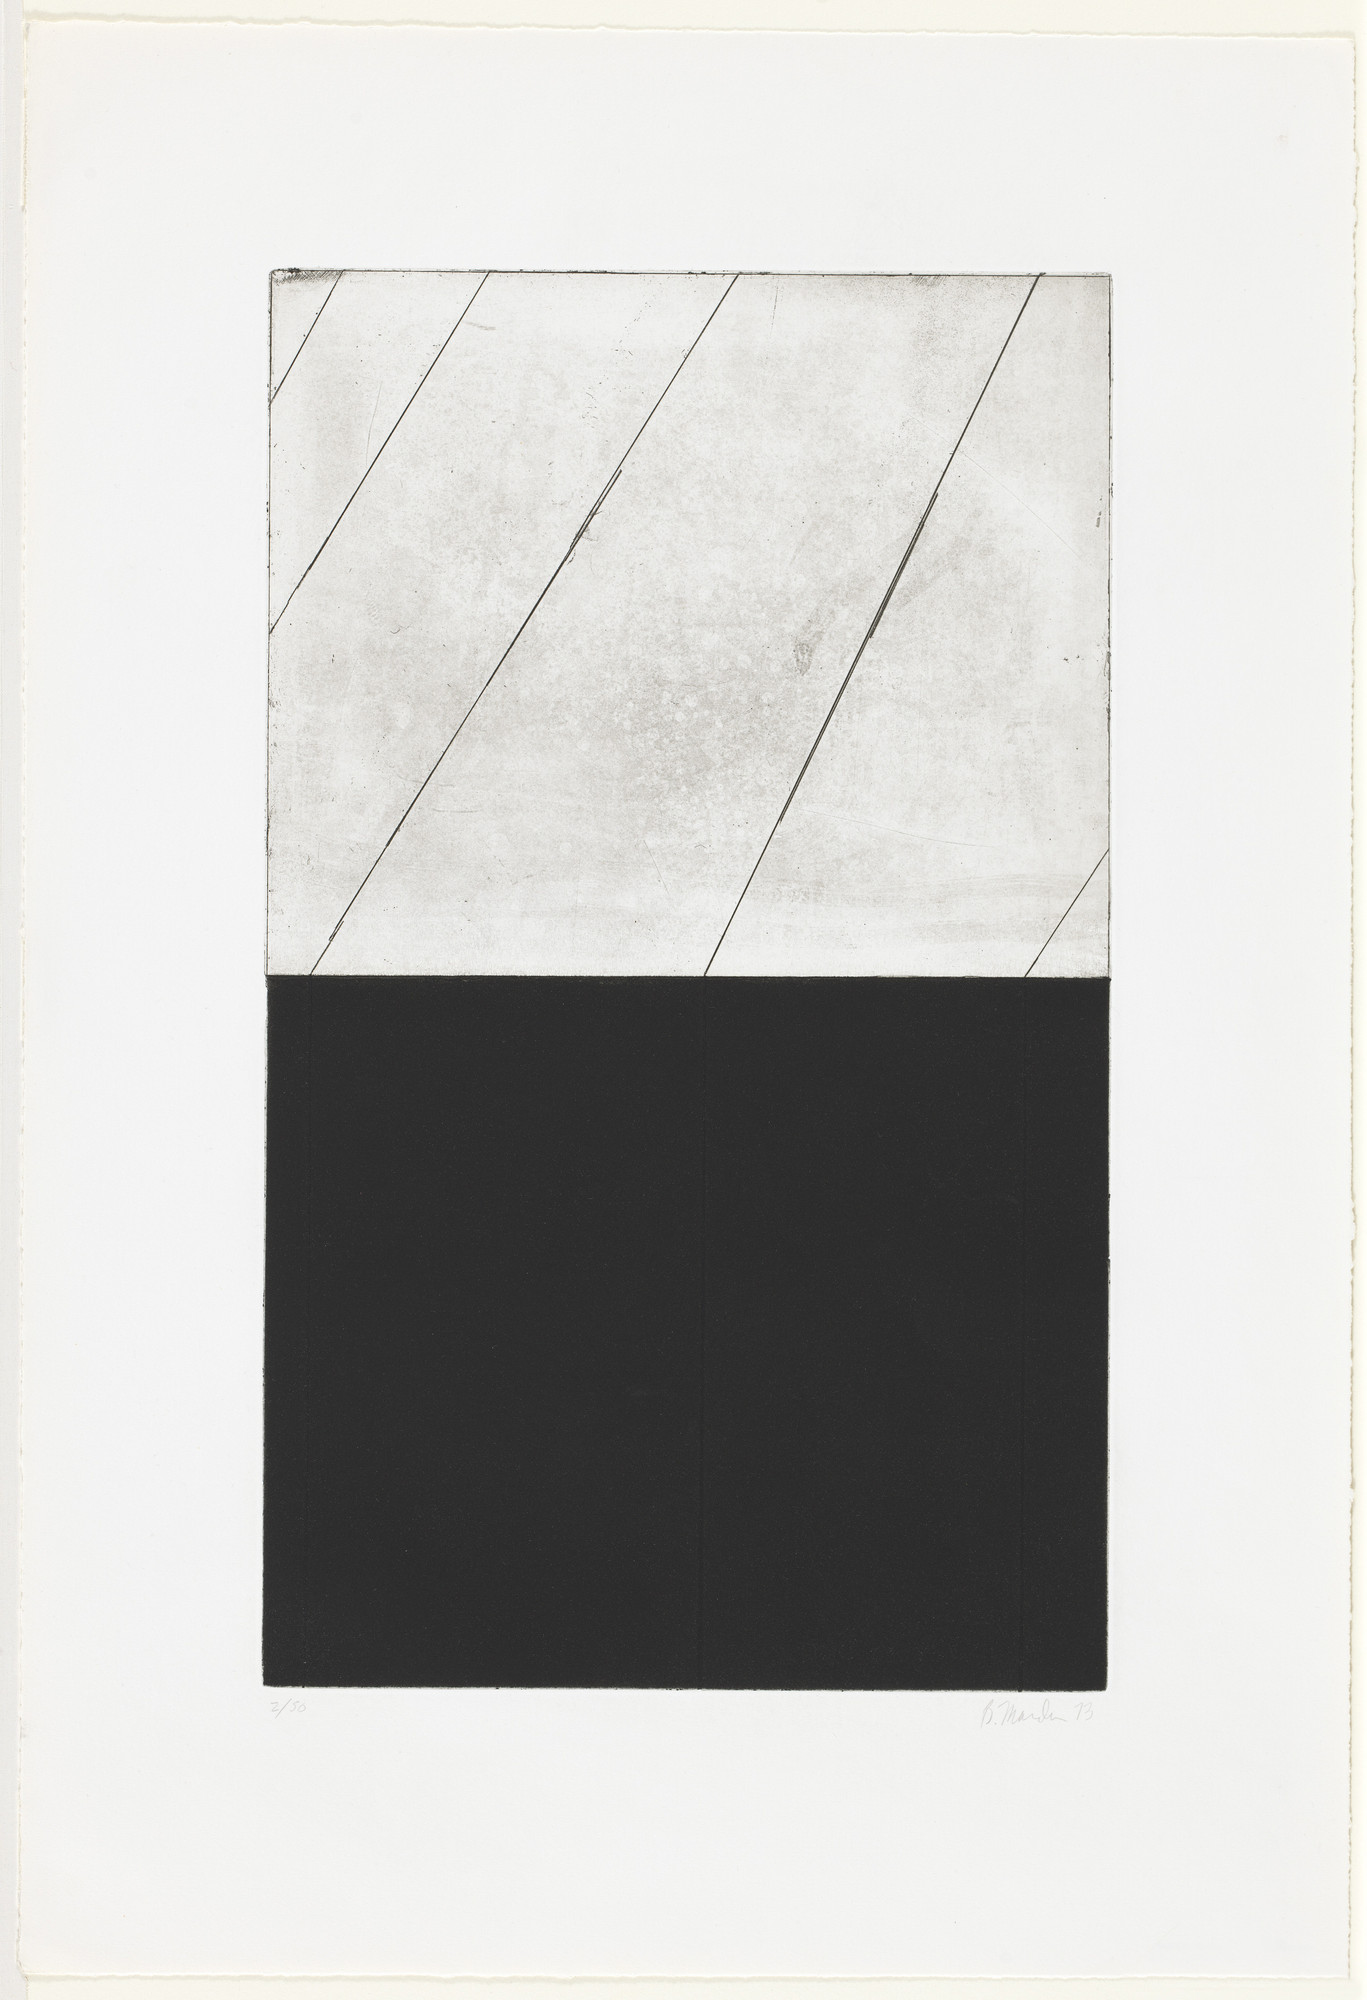 Brice Marden. Untitled, plate a from the series Adriatics. 1973